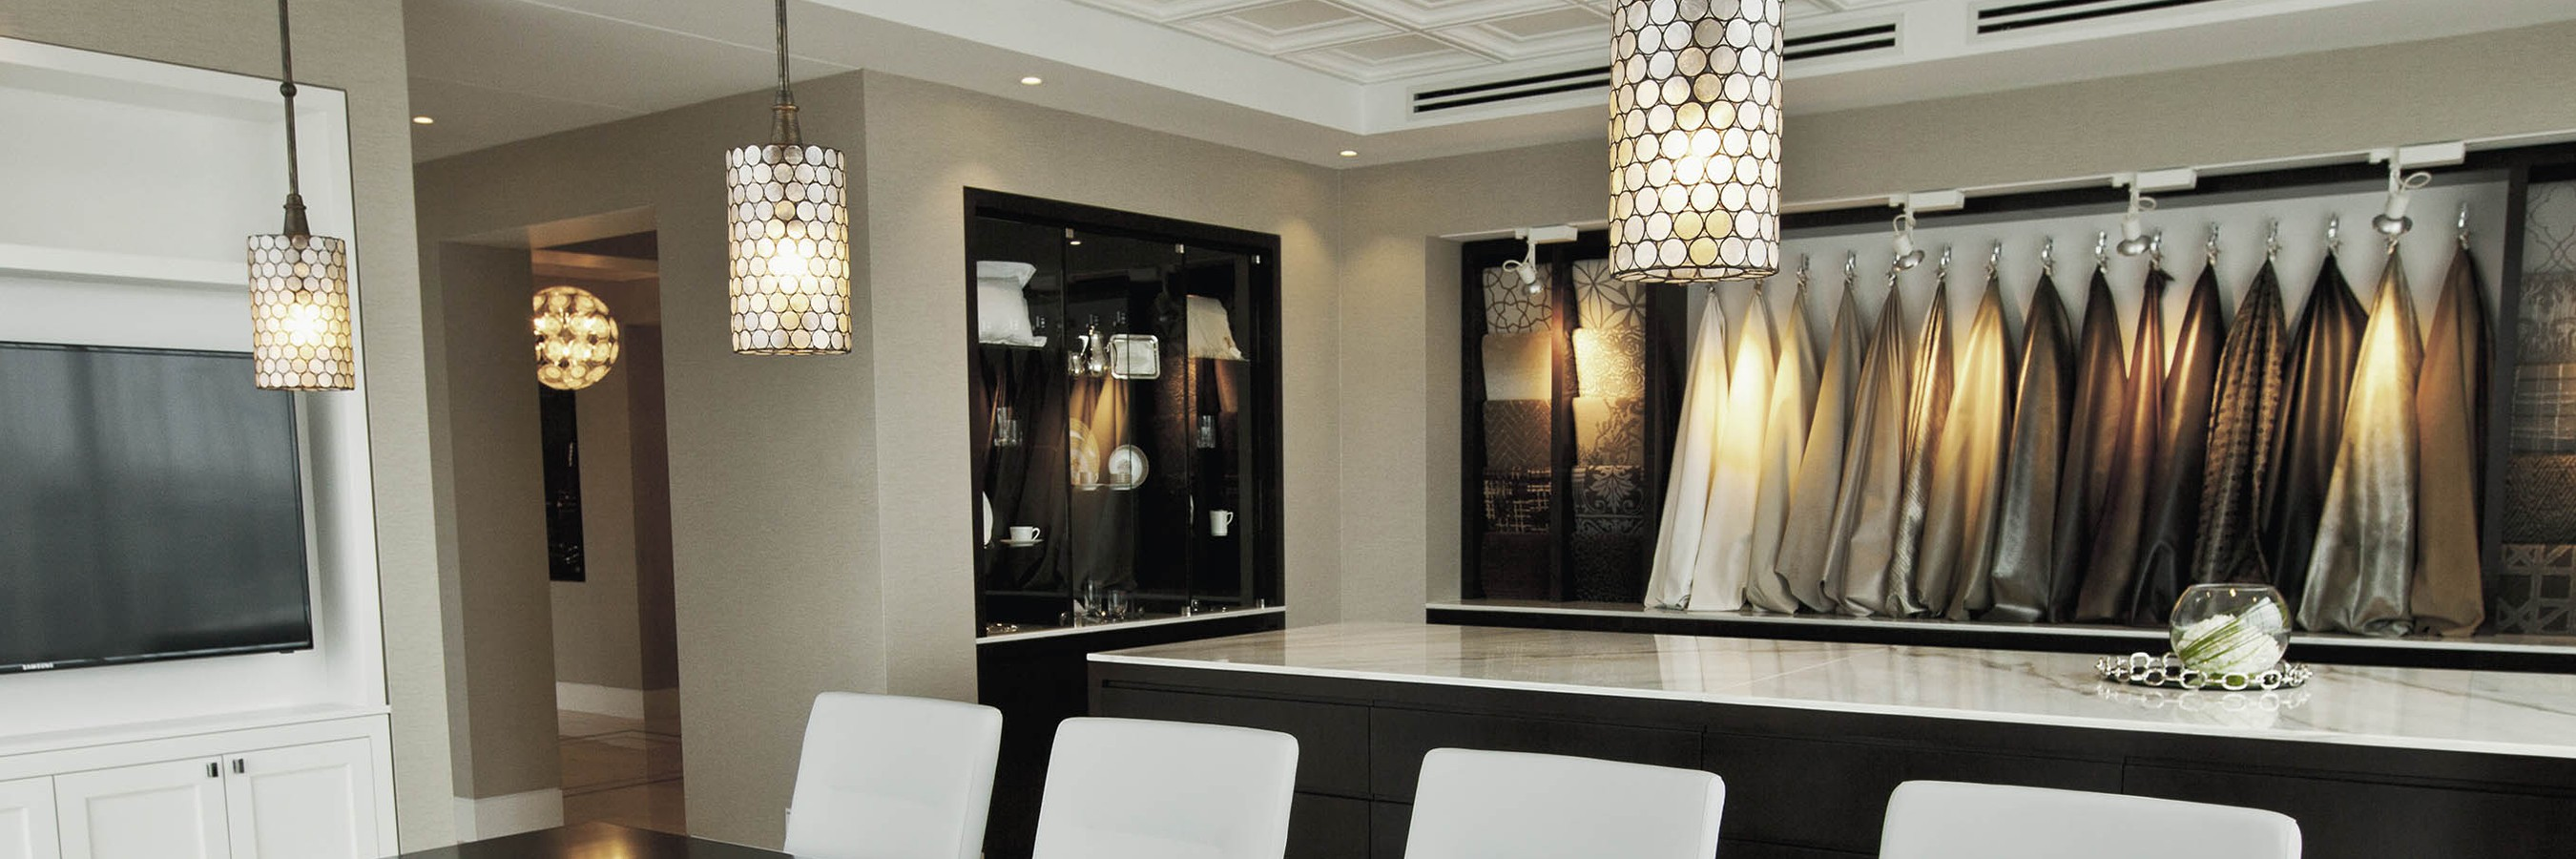 Interior showroom